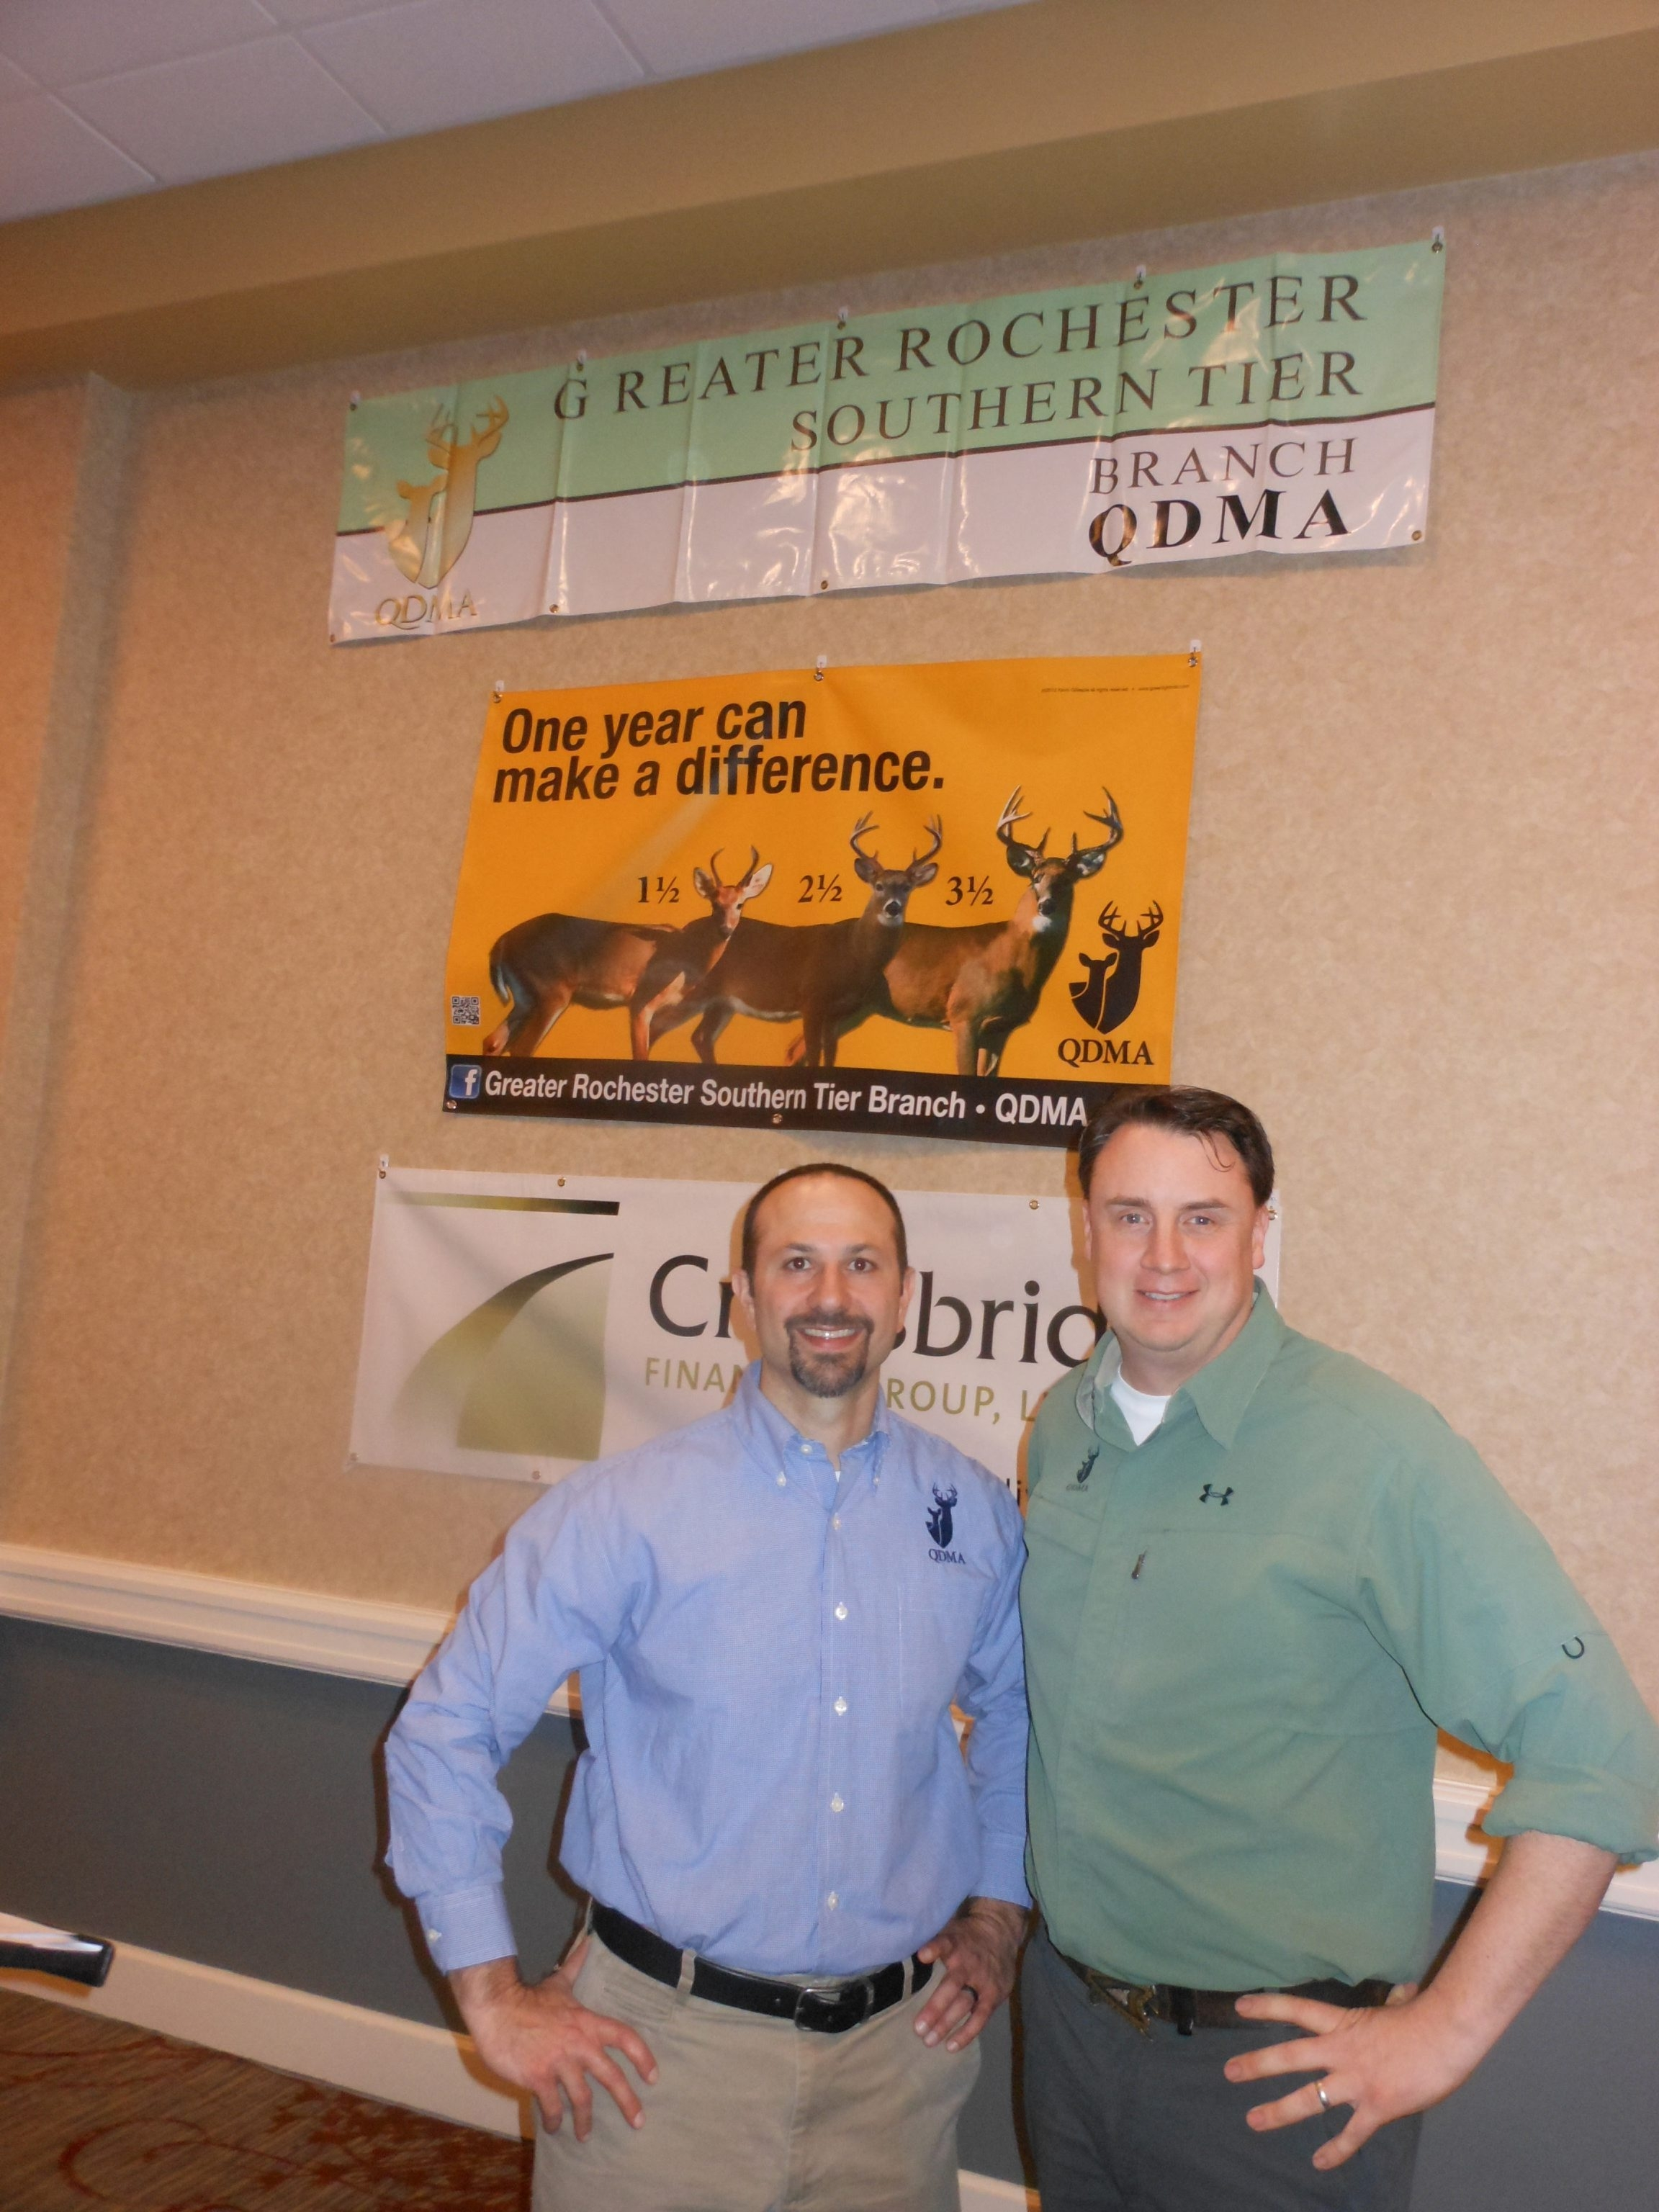 Whitetail deer experts Matt Ross and Neil Dougherty shared insights on deer dynamics during a winter lecture seminar series in Rochester.